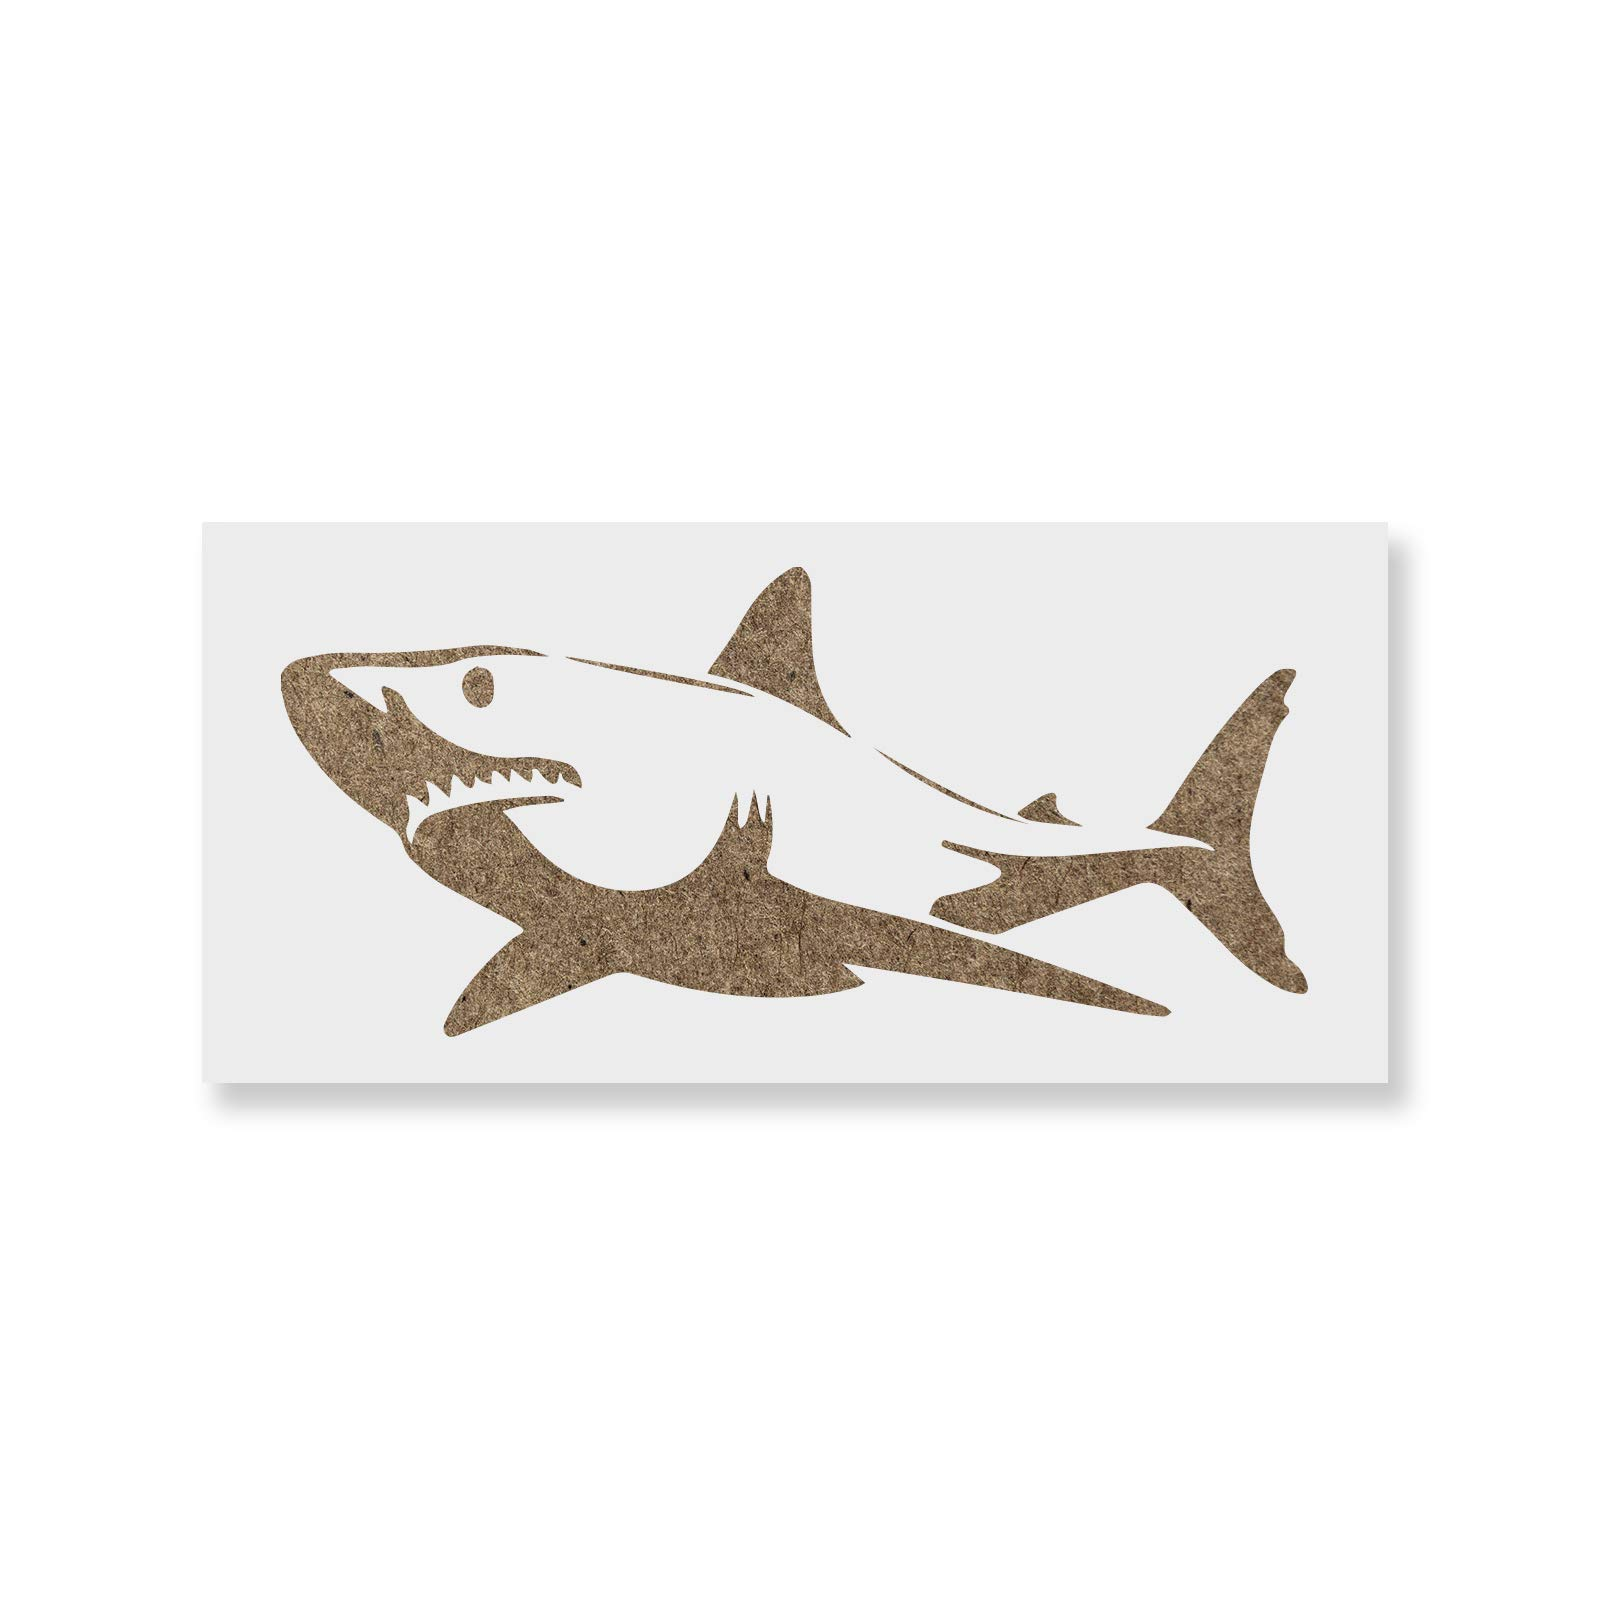 Shark Stencil Template for Walls and Crafts - Reusable Stencils for Painting in Small & Large Sizes